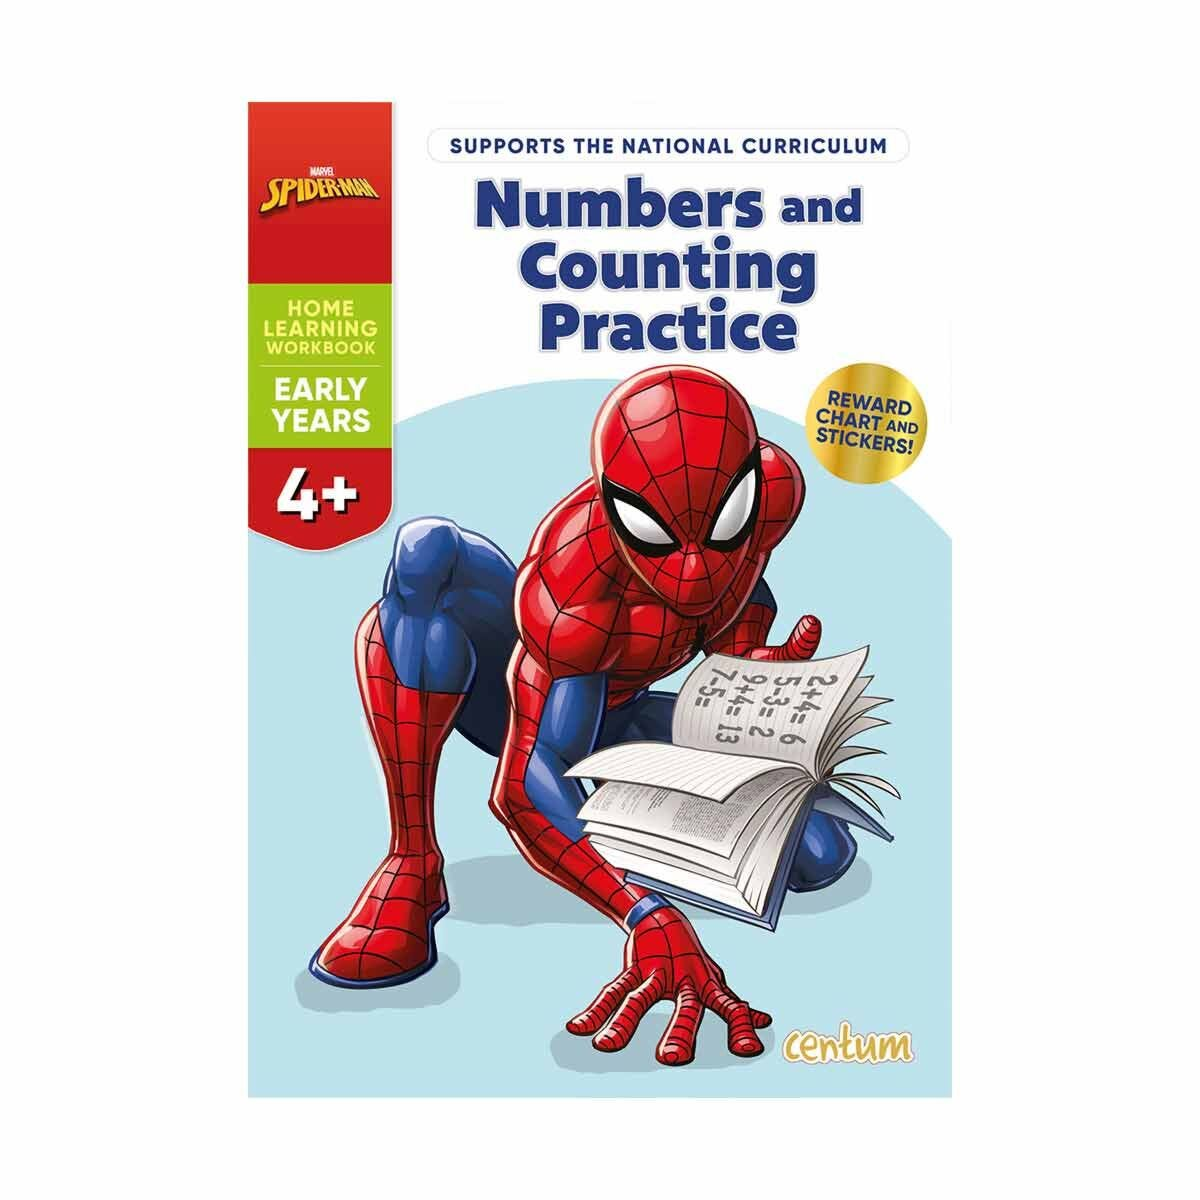 Centum Disney Learning Spiderman Numbers and Counting Practice 4